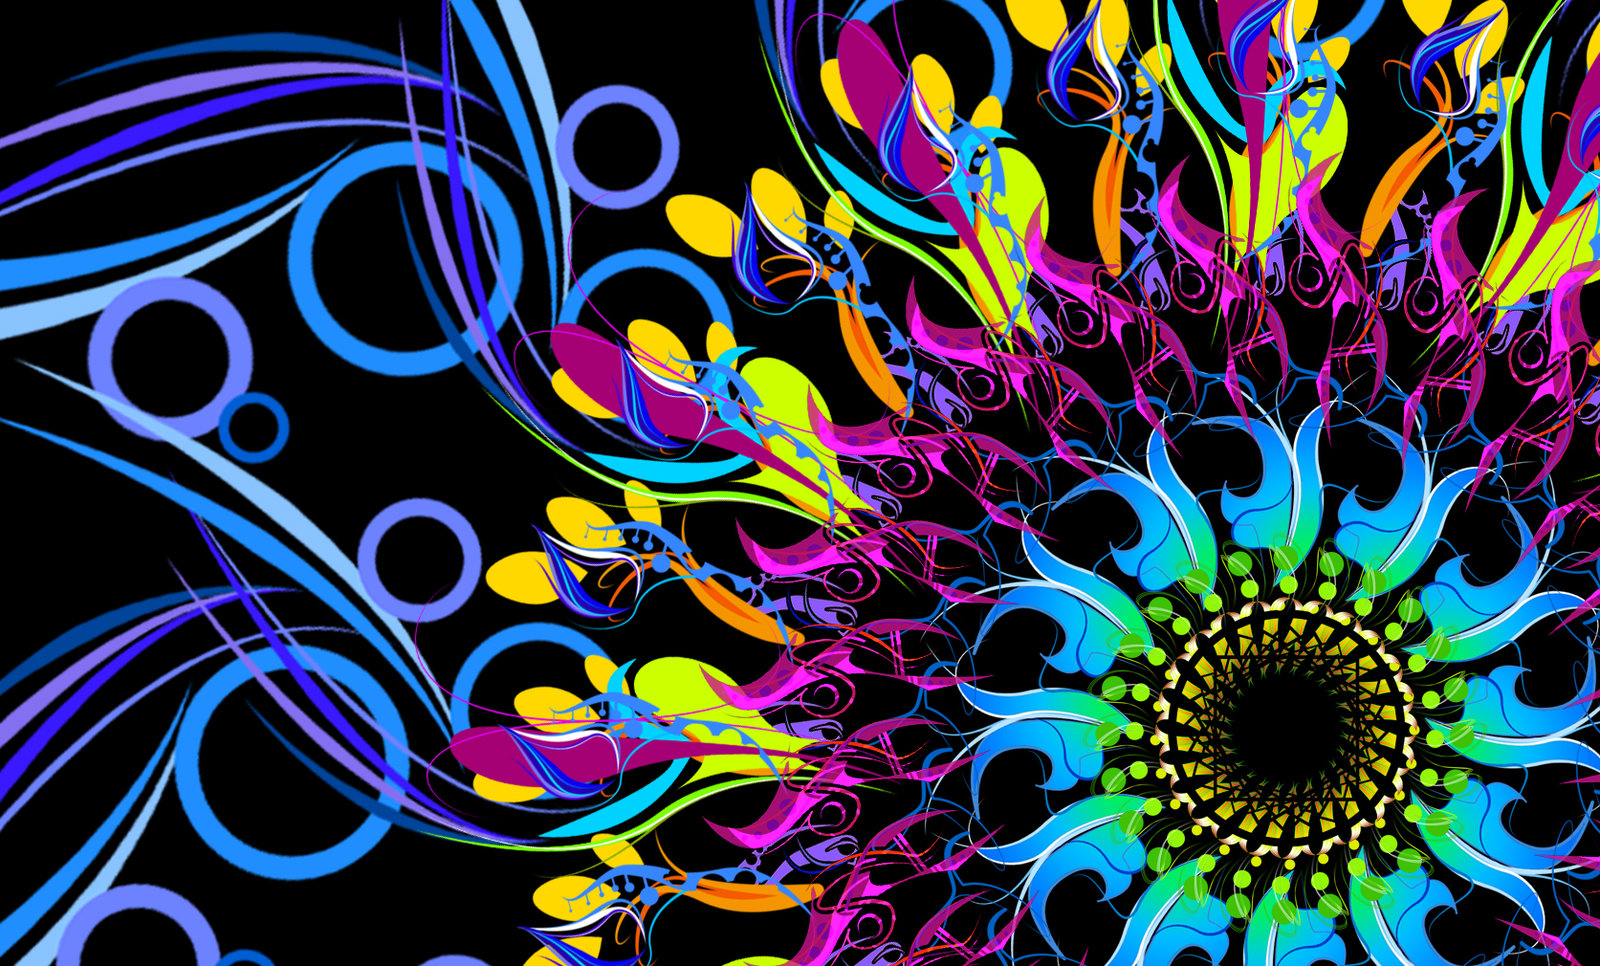 Neon Flower Abstract Wallpaper And Background Image